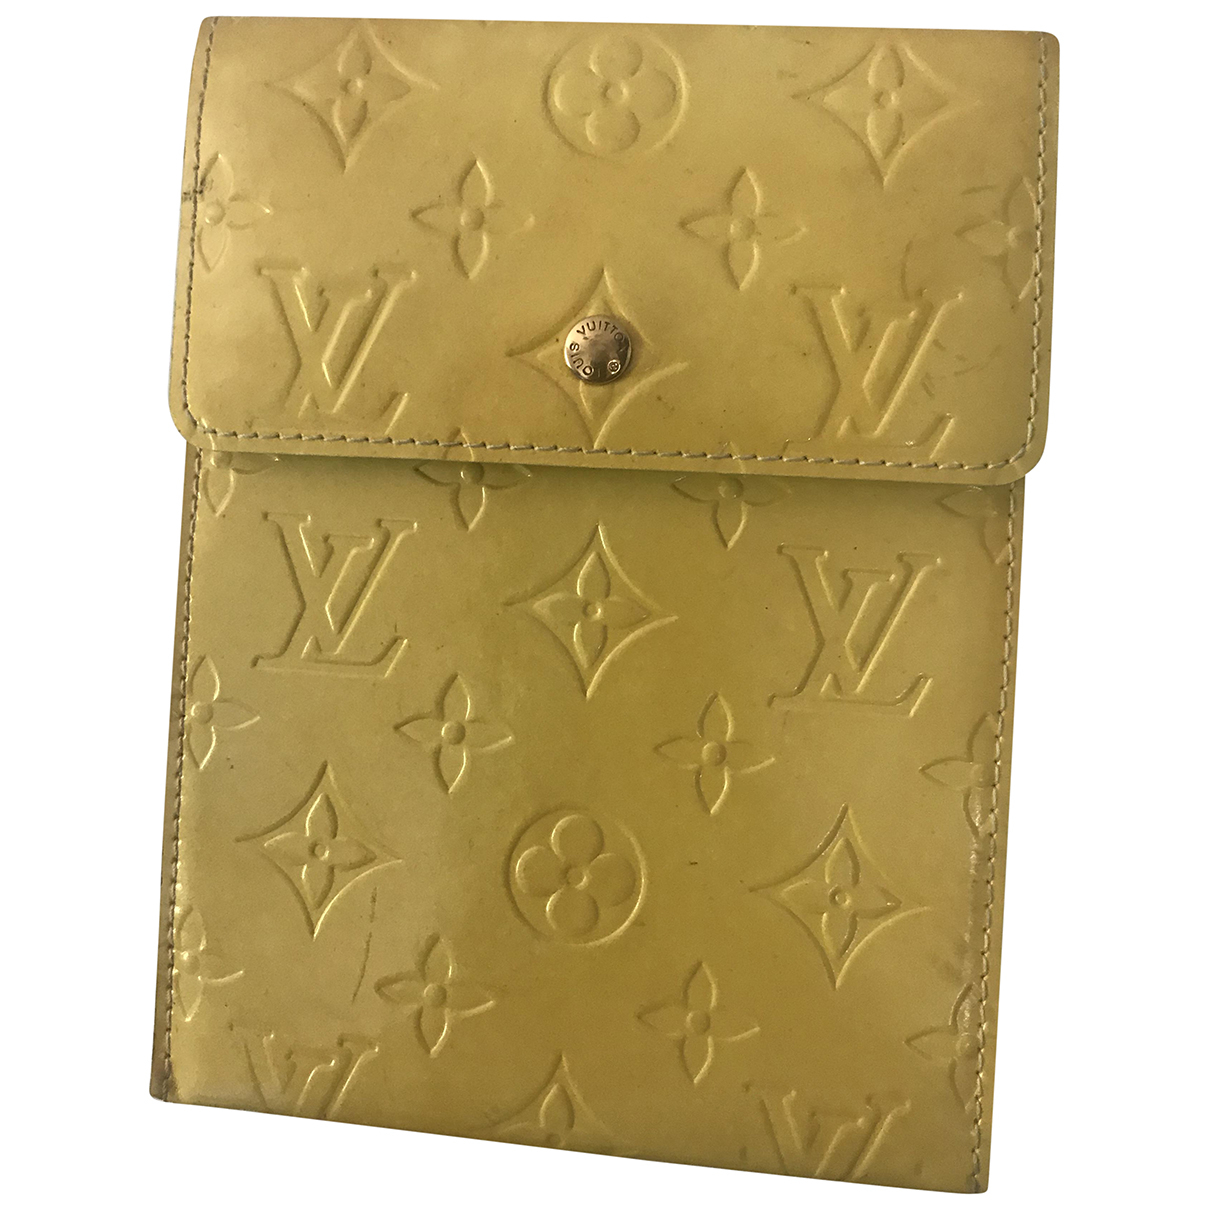 Louis Vuitton \N Yellow Leather Clutch bag for Women \N